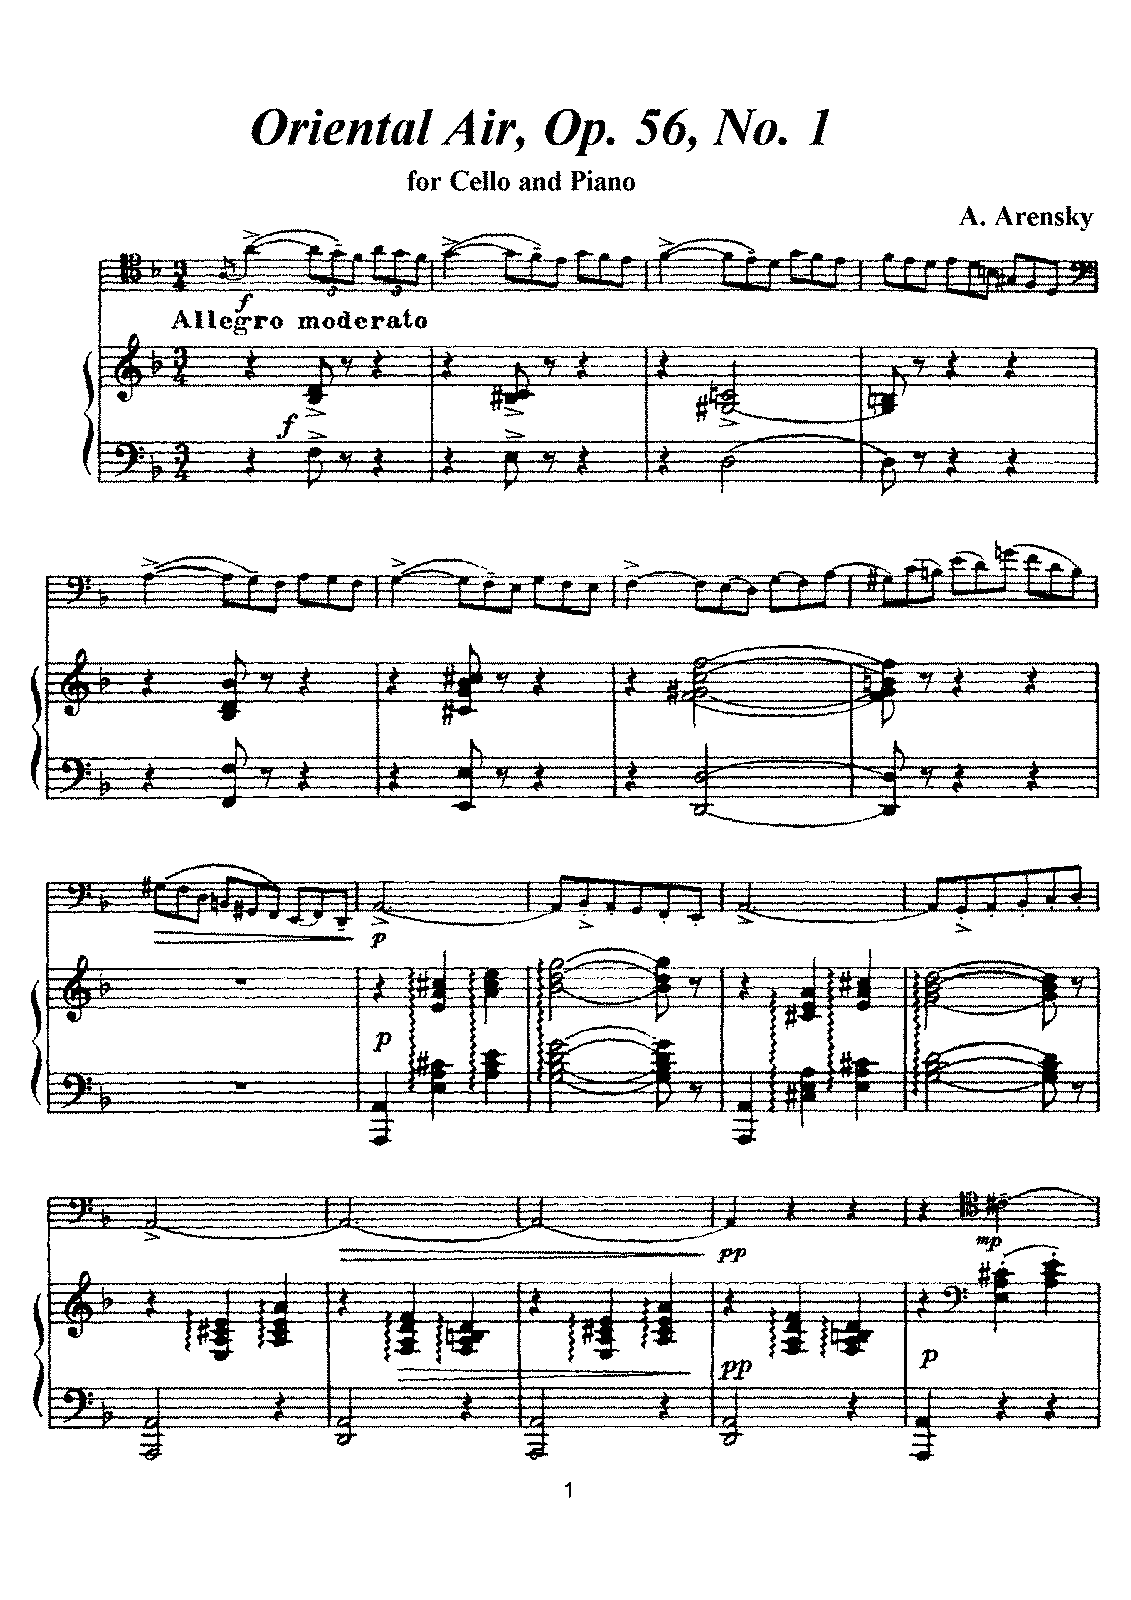 PMLP108818-Arensky Orientale Op56 No1 Cello and Piano.pdf